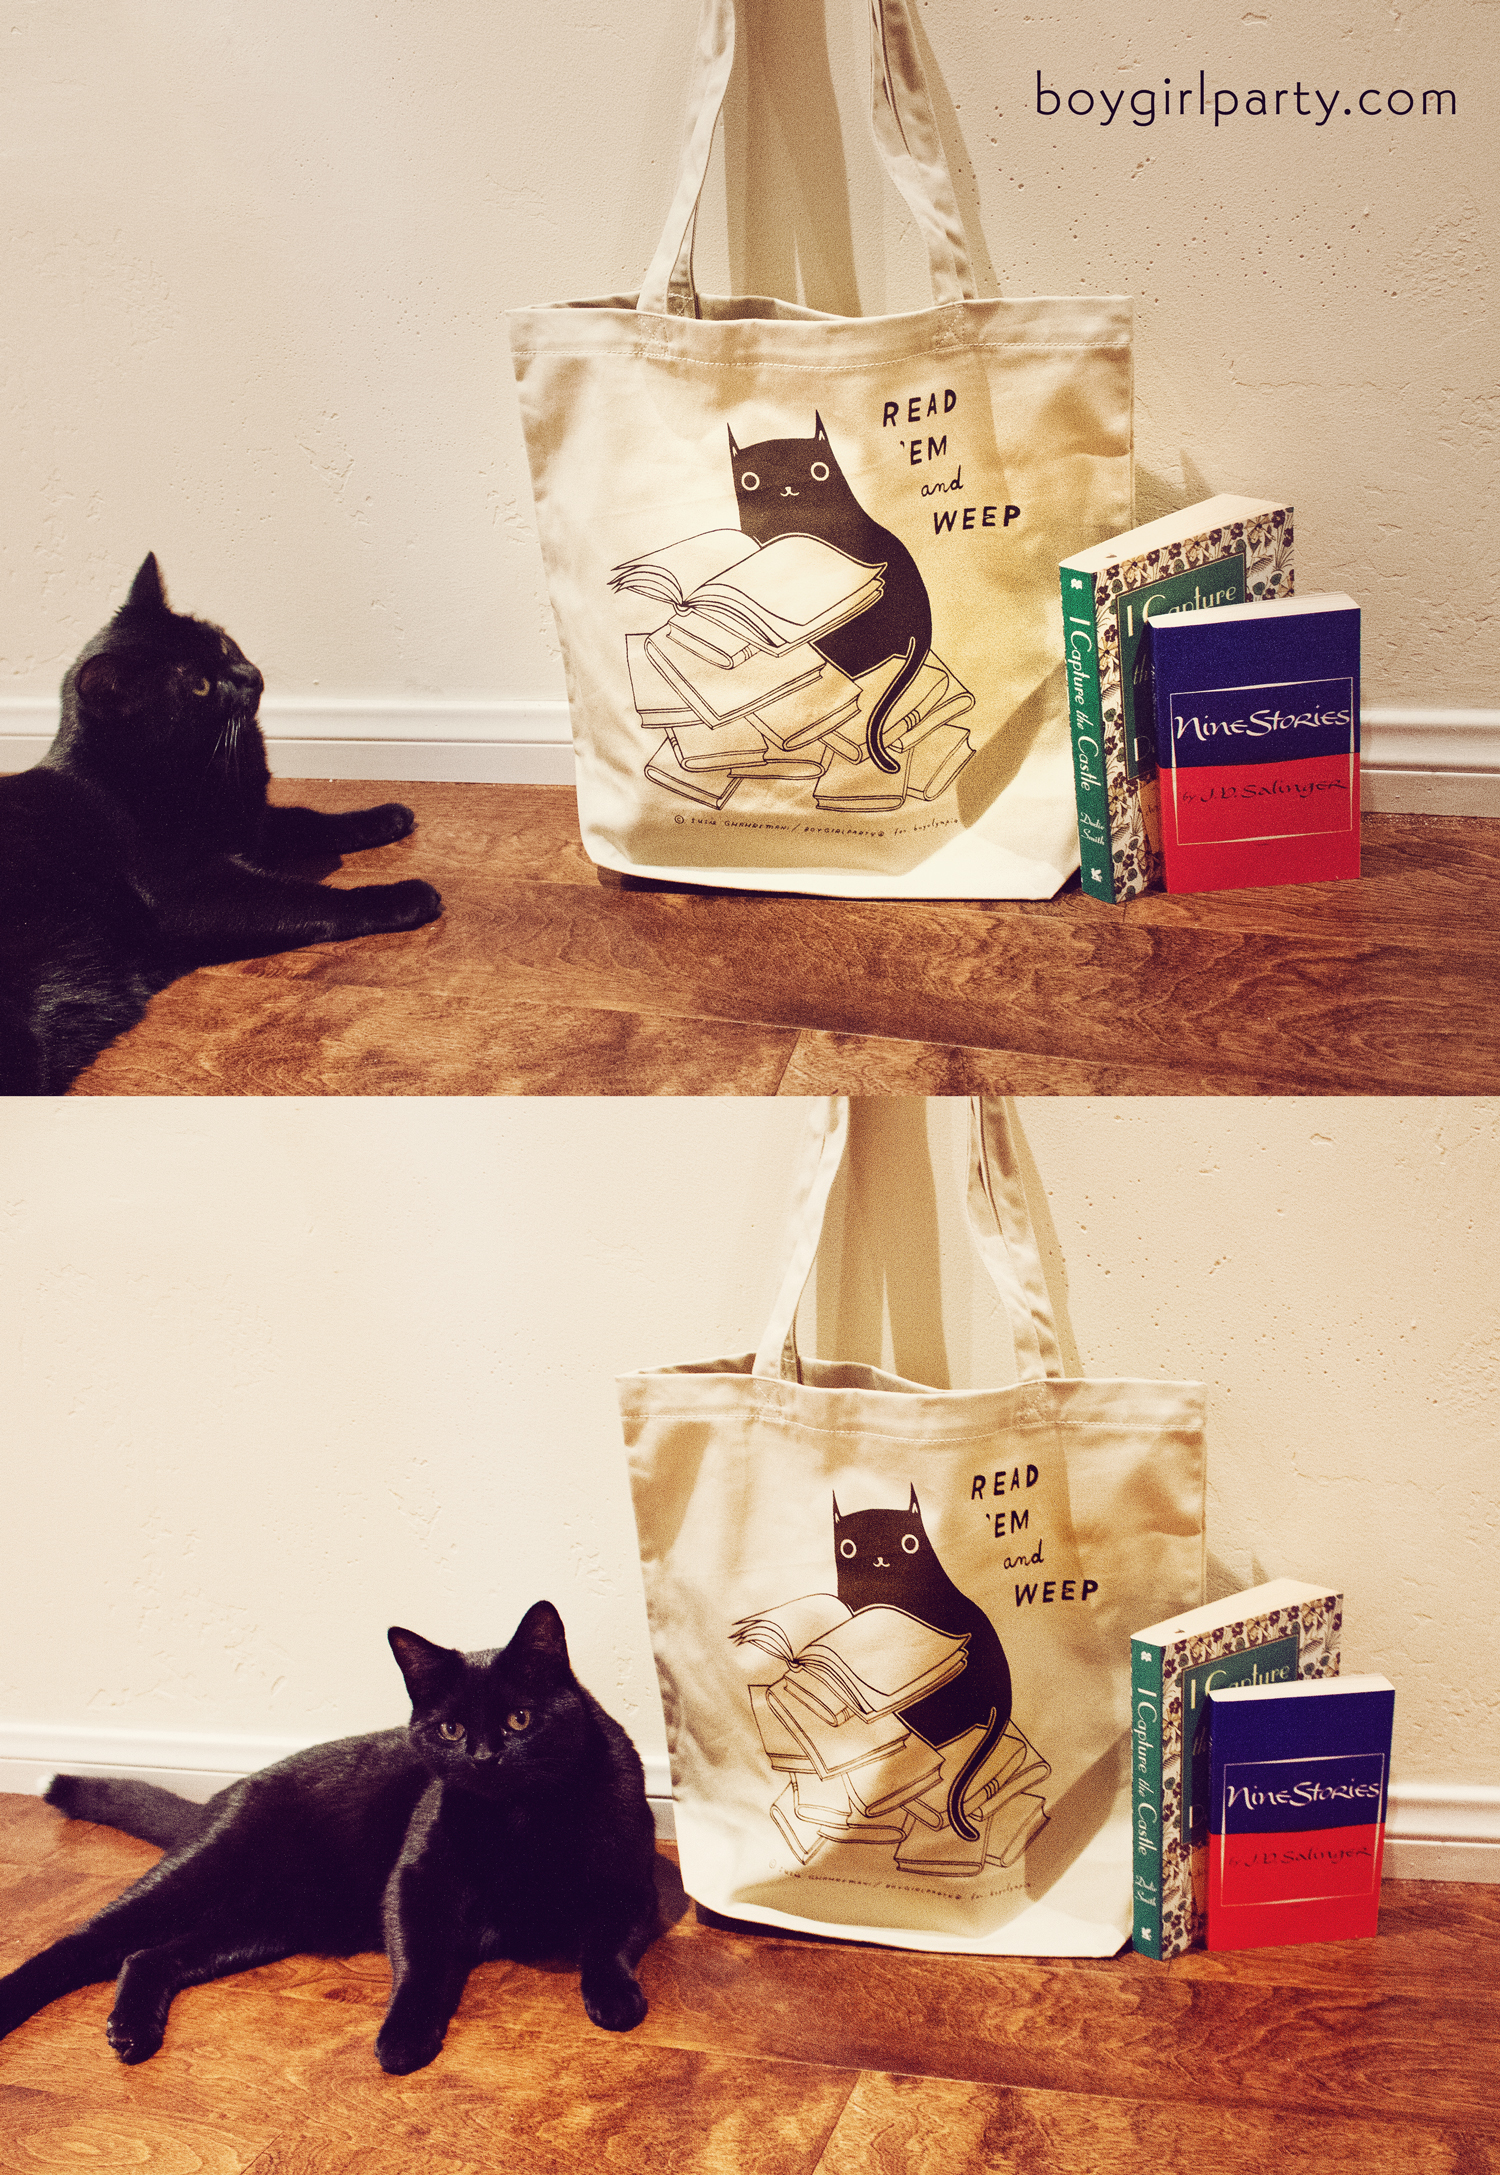 Cat and book tote bag by Susie Ghahremani / boygirlparty.com